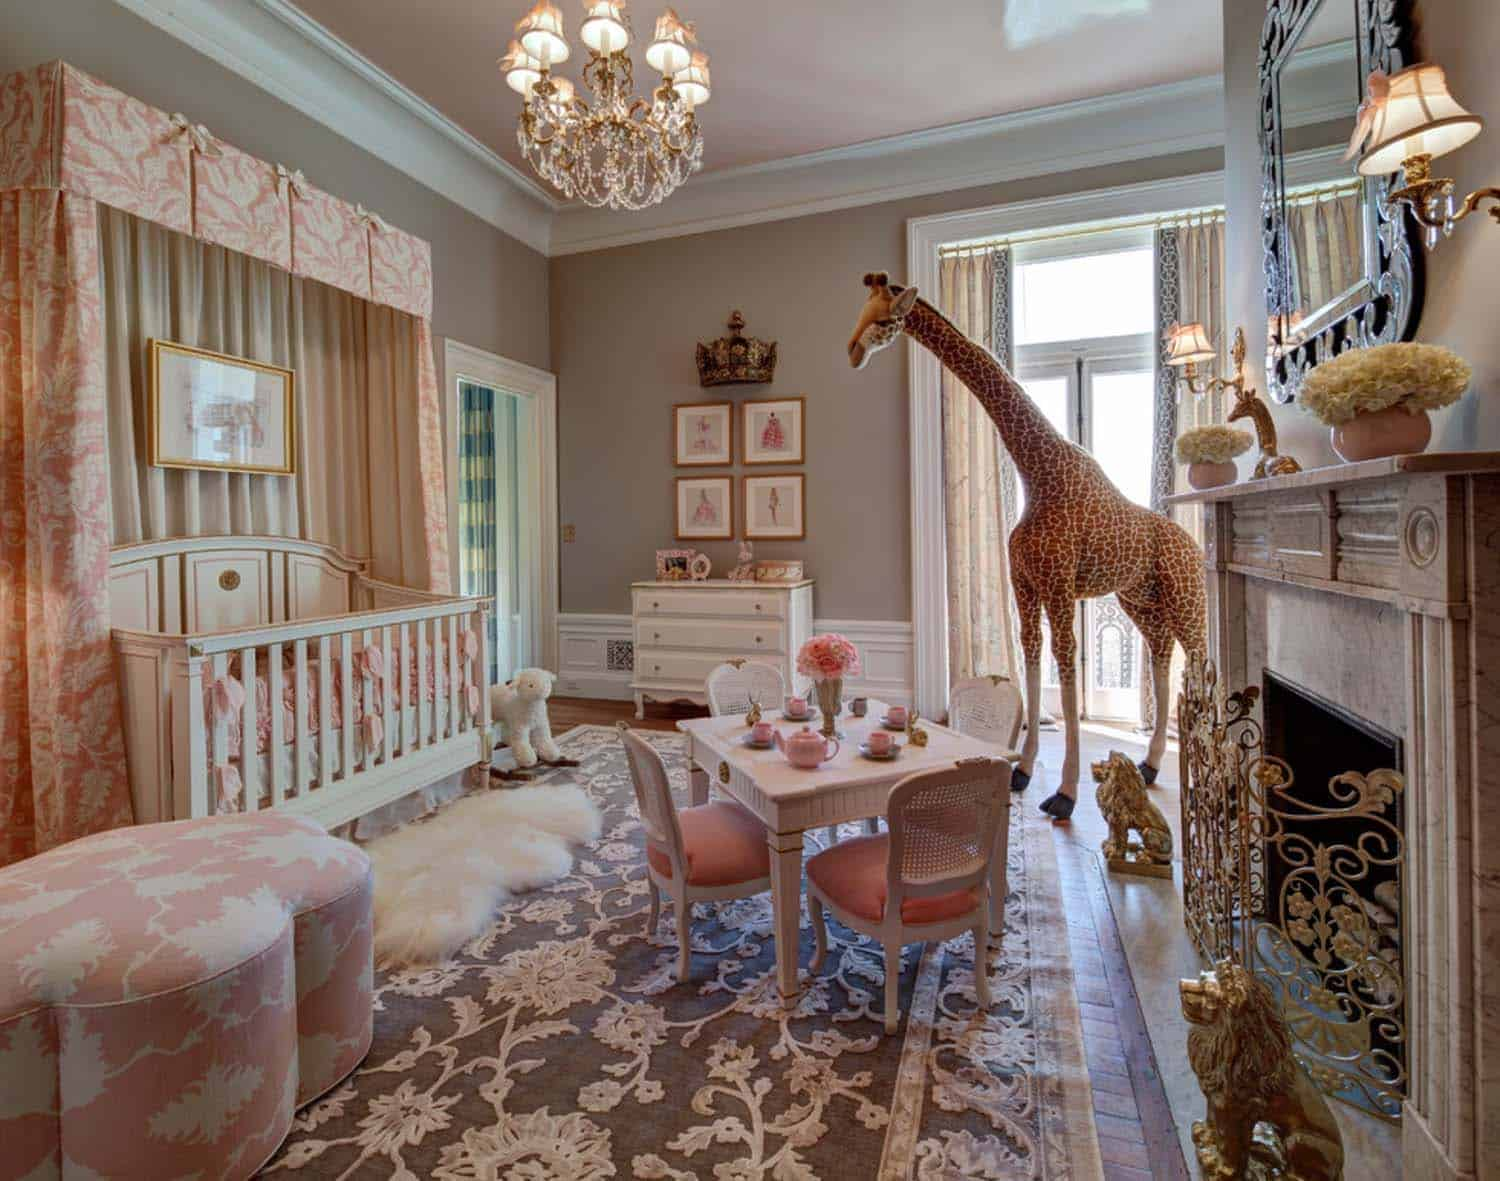 Stylish Nursery Decorating Ideas-24-1 Kindesign